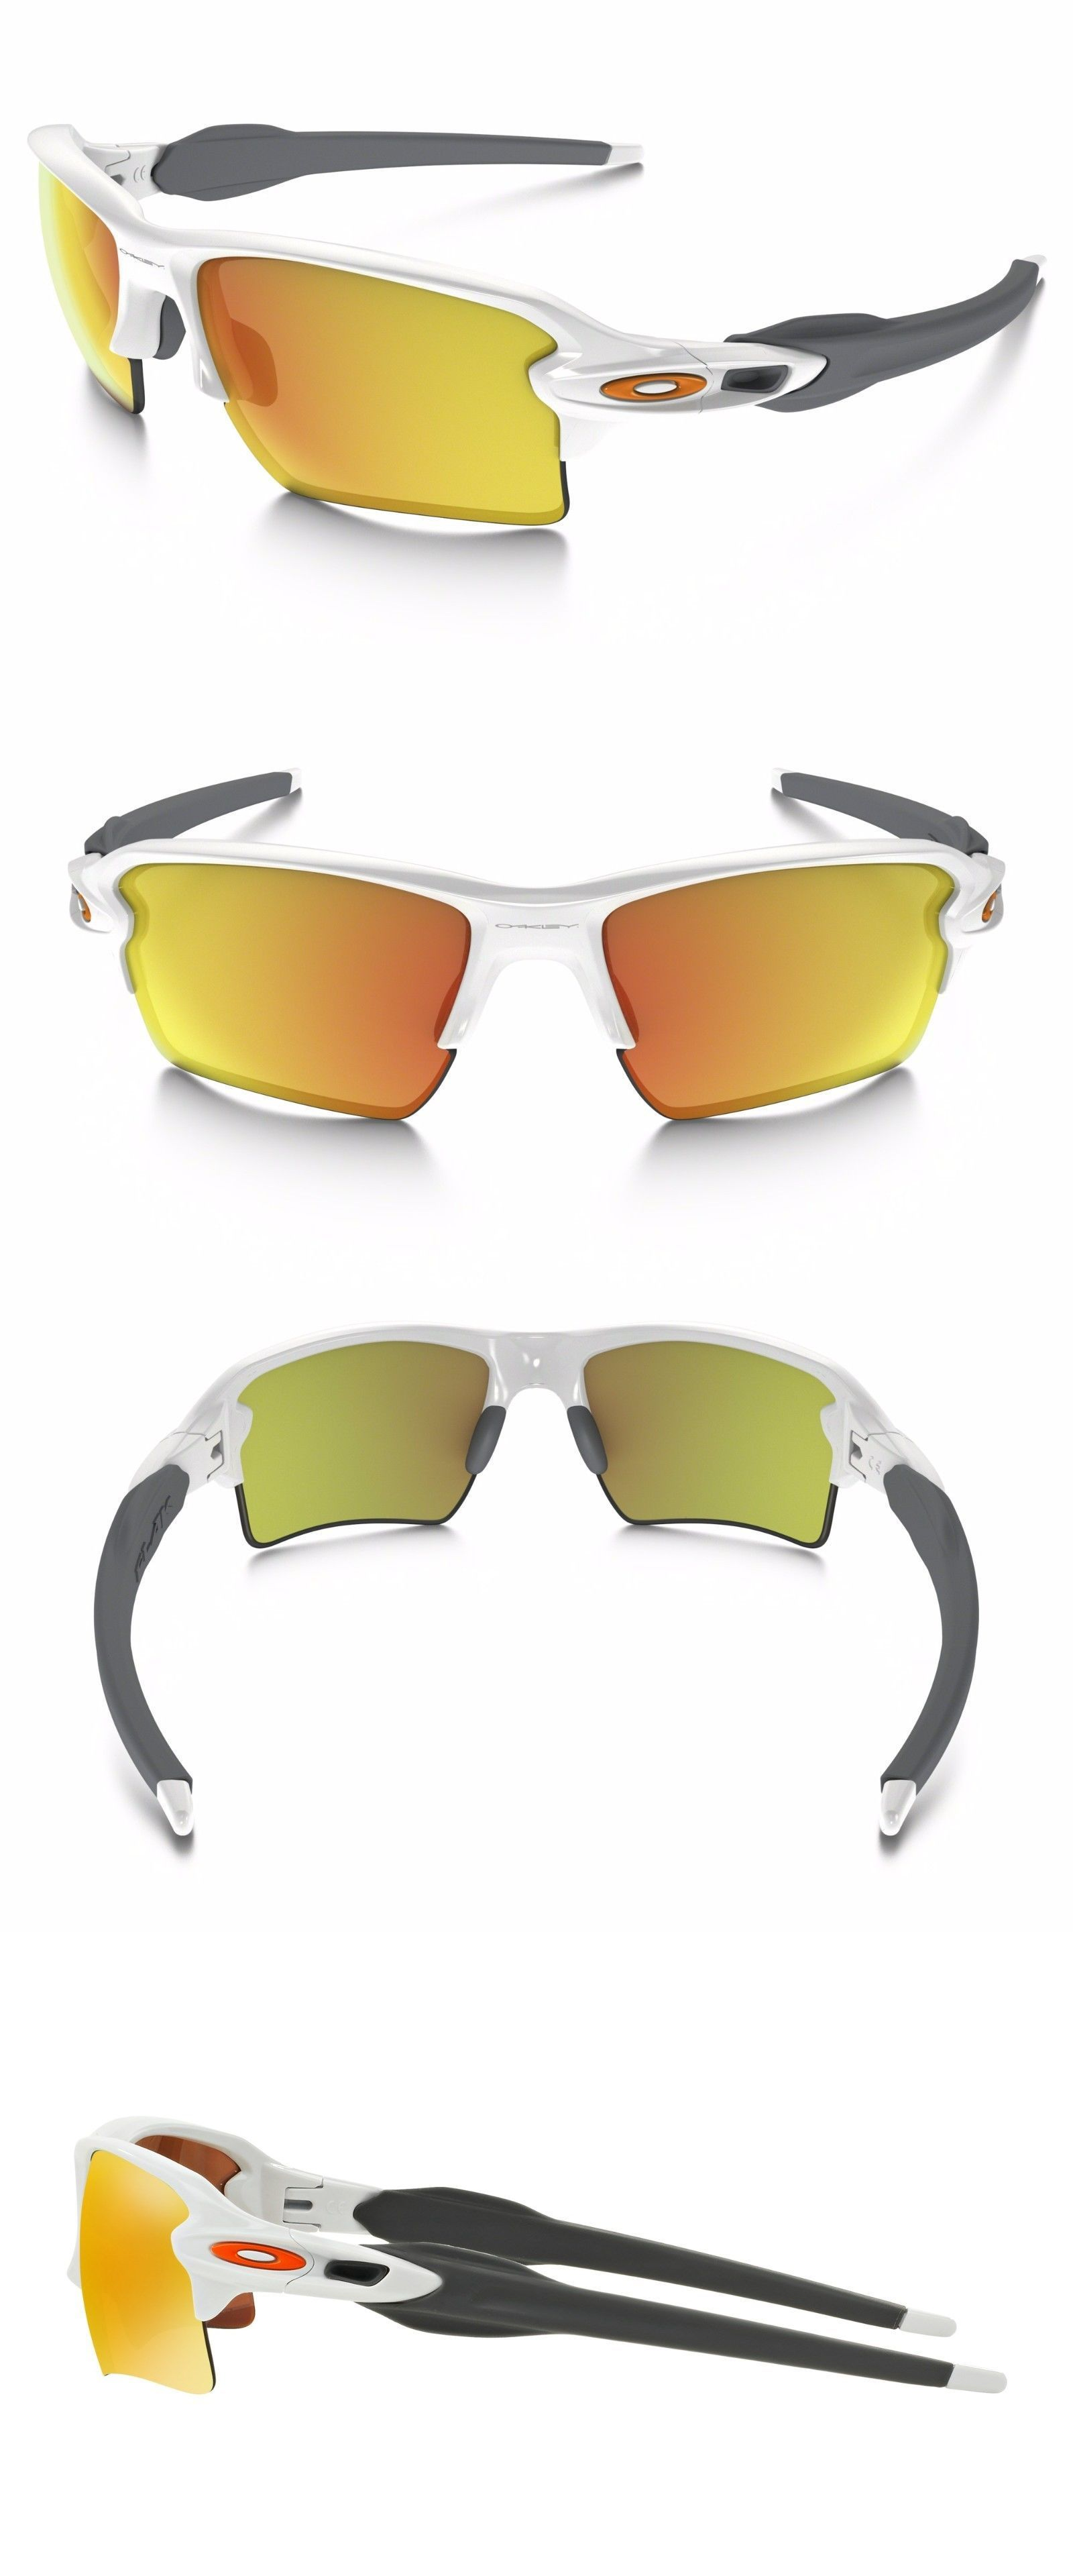 3ac97a759c Sunglass Lens Replacements 179194  Oakley Oo9188-19 Flak 2.0 Xl Polished  White Fire Iridium